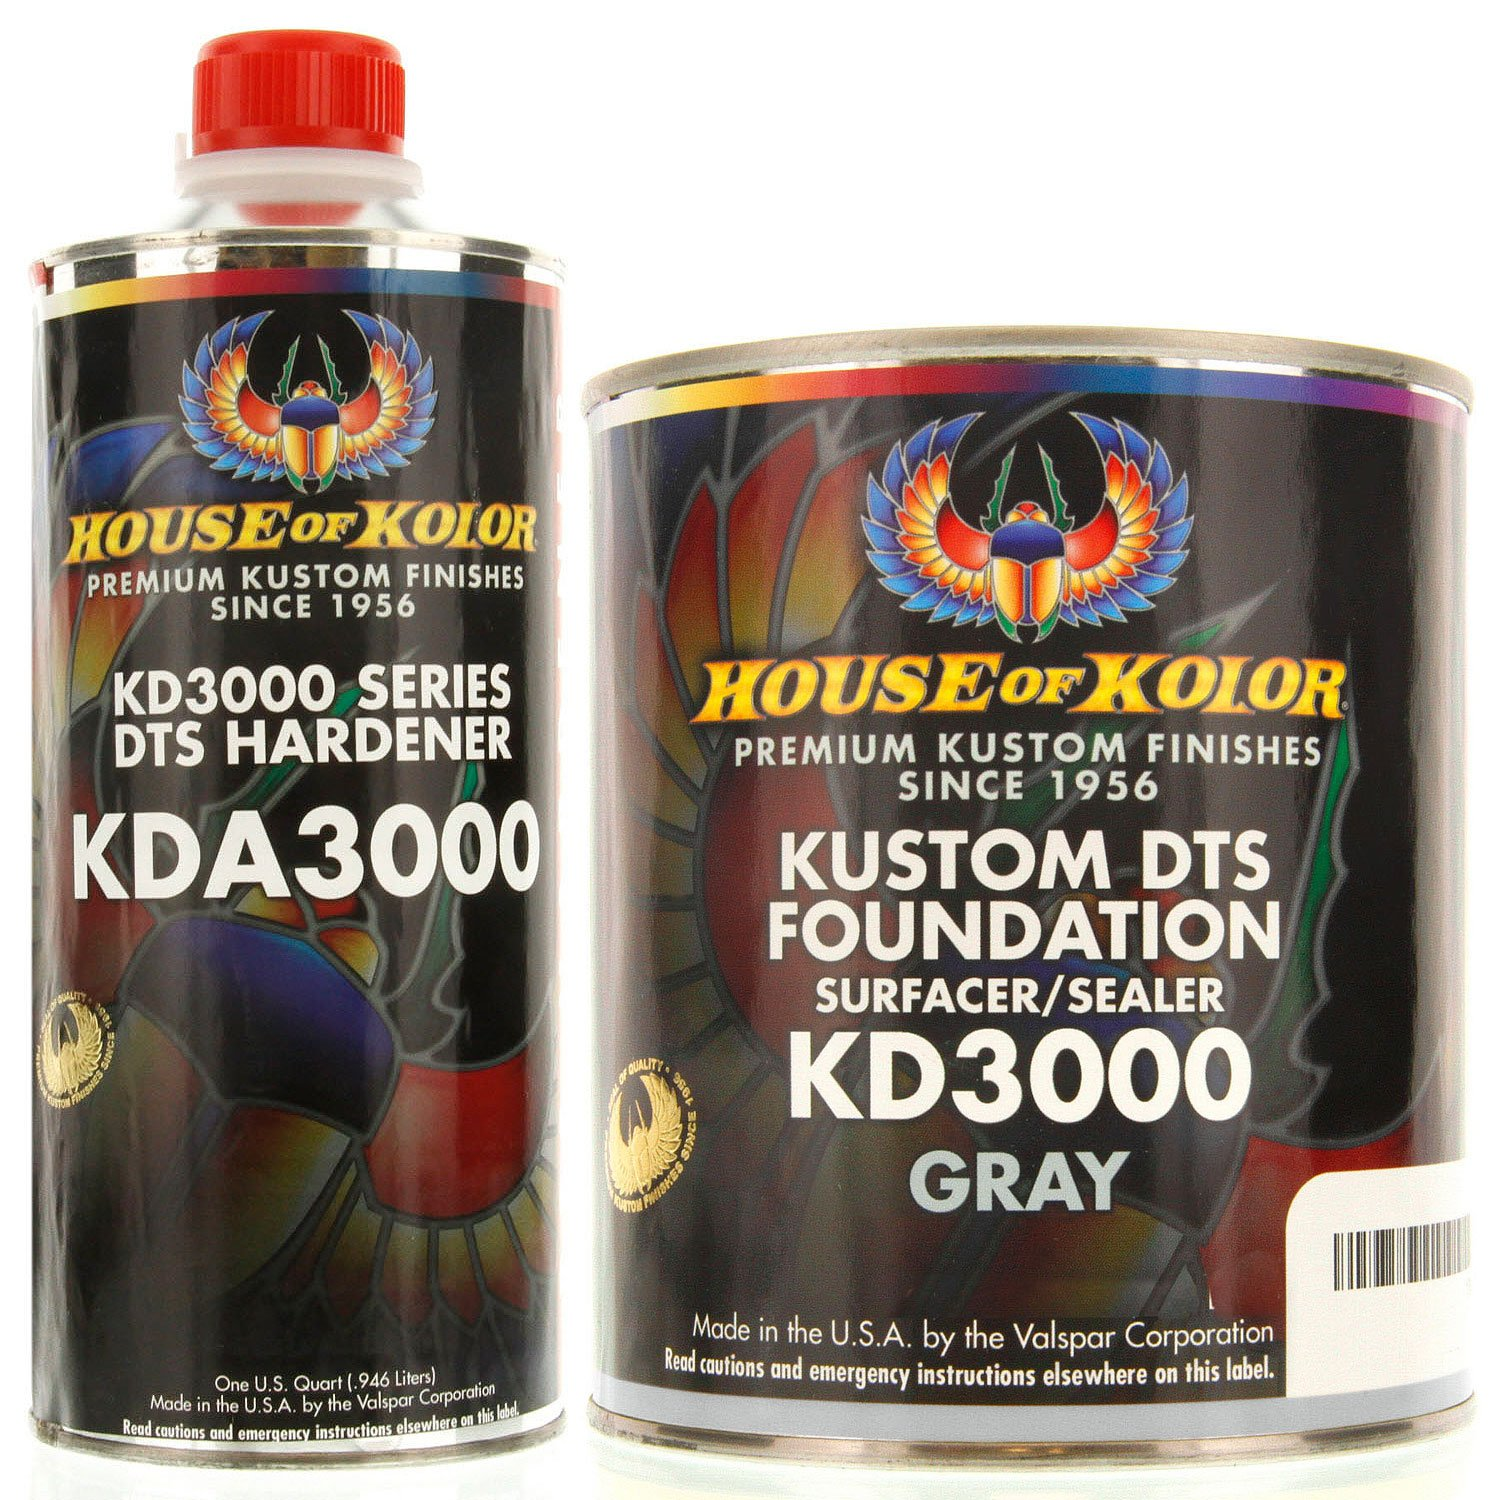 House of Kolor GALLON KIT GRAY Color KD3000 DTS Surfacer / Sealer w/ Hardener by House of Kolor